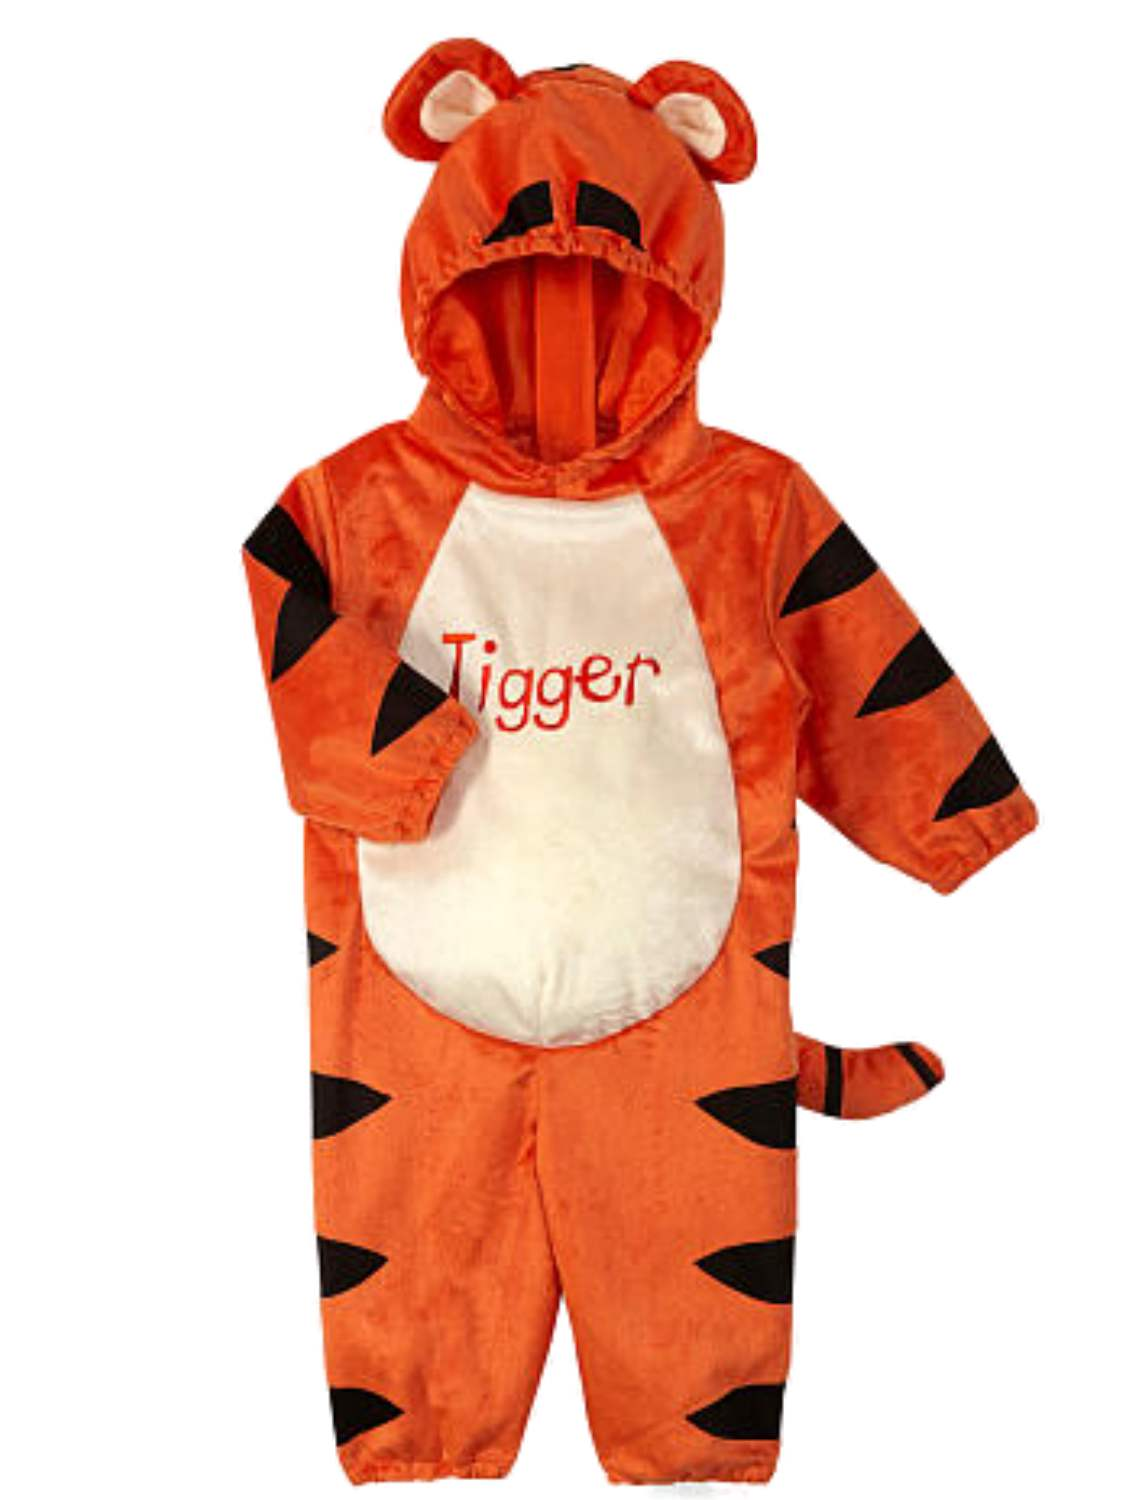 Disney Winnie the Pooh Infant Boys Girls Plush Baby Tigger Jumpsuit Costume by